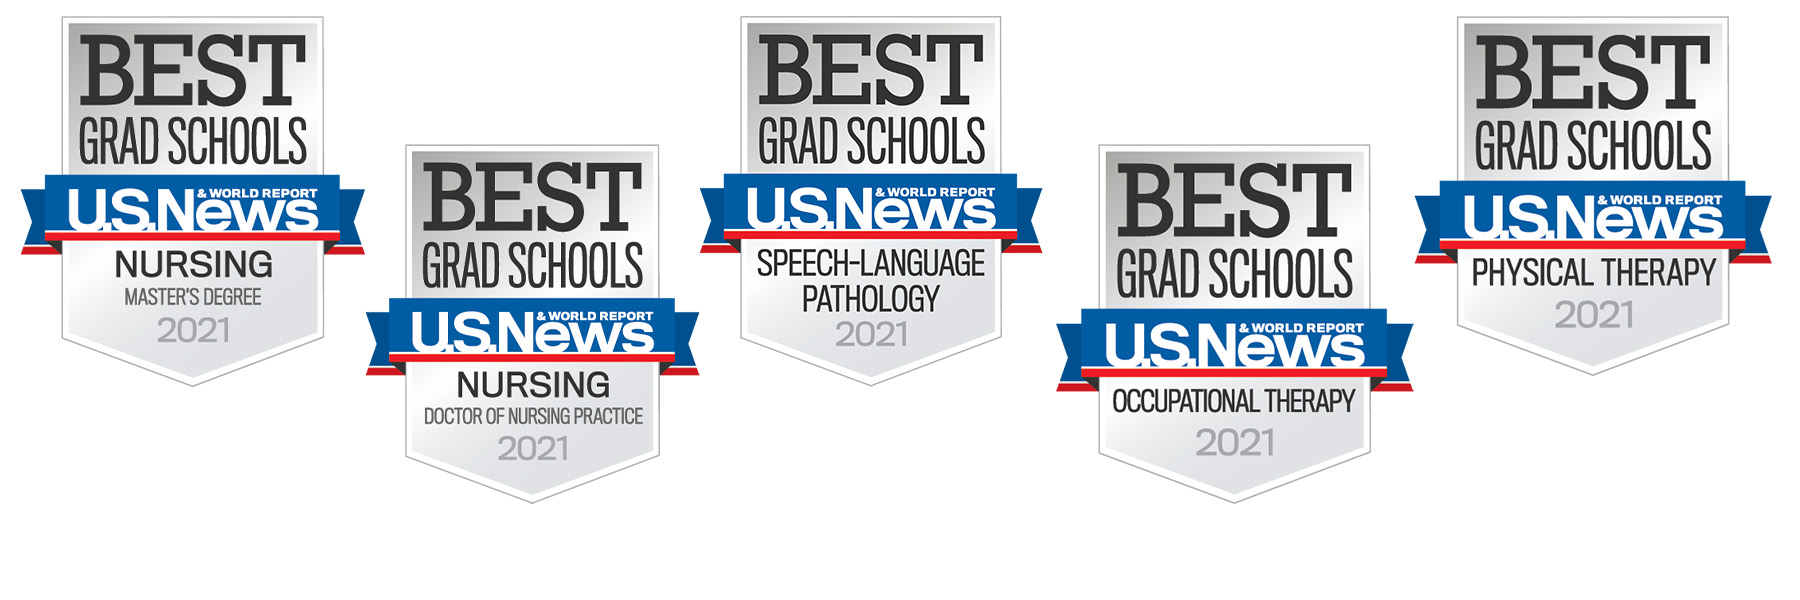 banner shows all award badges for the 5 schools recognized in US News and World Report